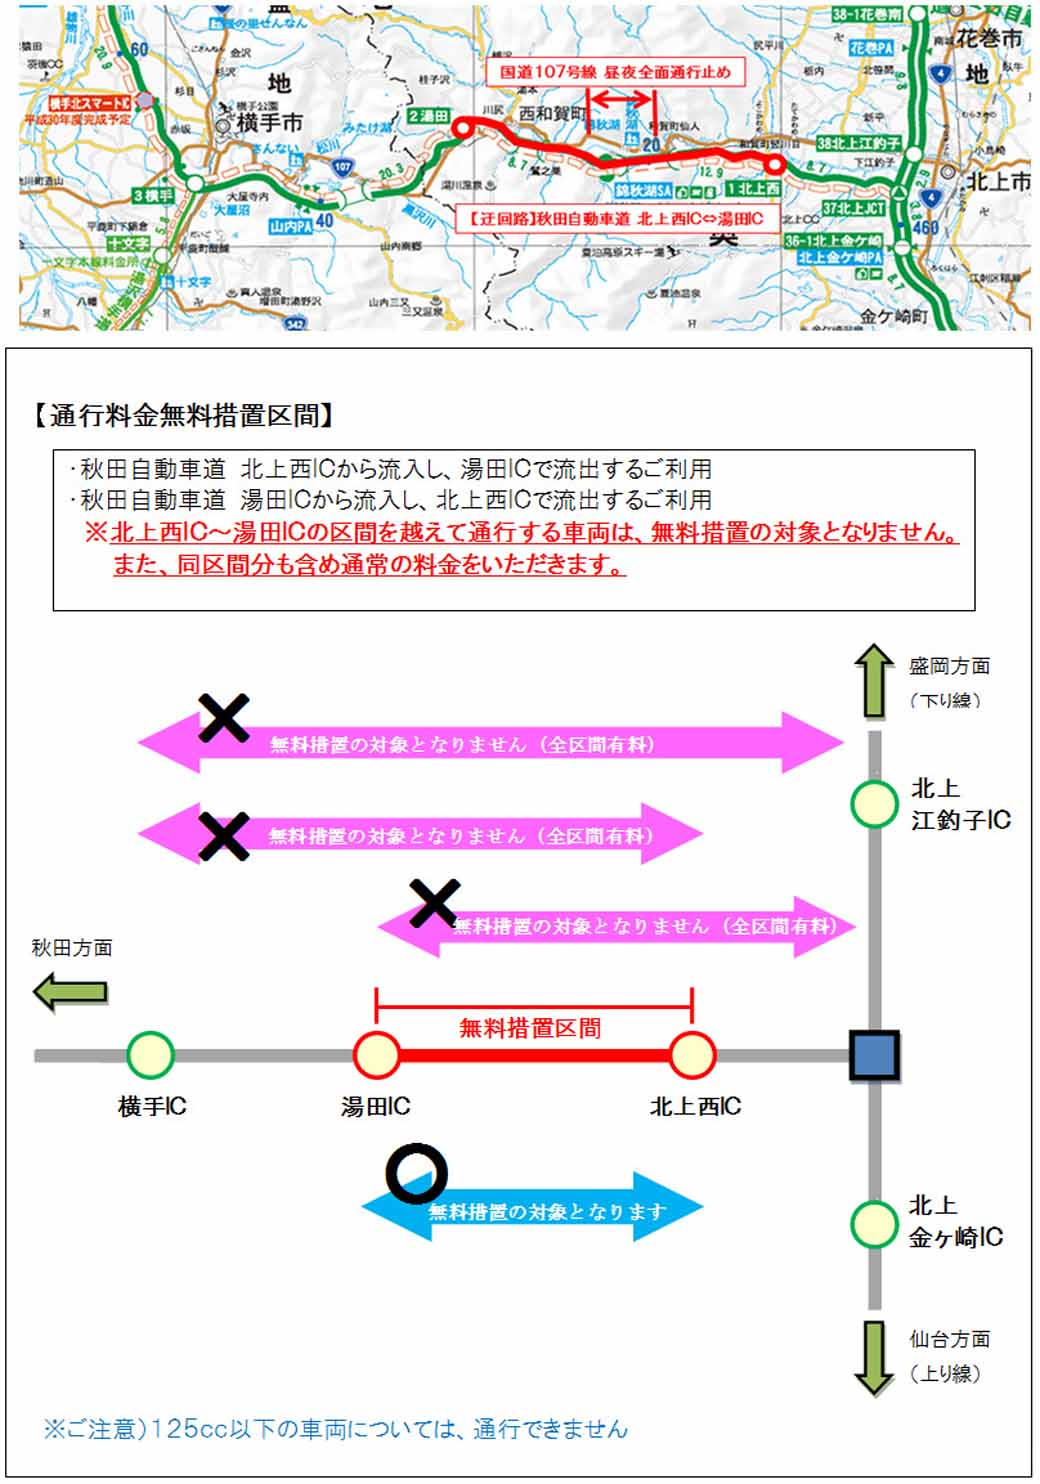 associated-with-the-national-highway-107-no-disaster-restoration-work-toll-free-measures-were-taken-of-akita-expressway20160519-1